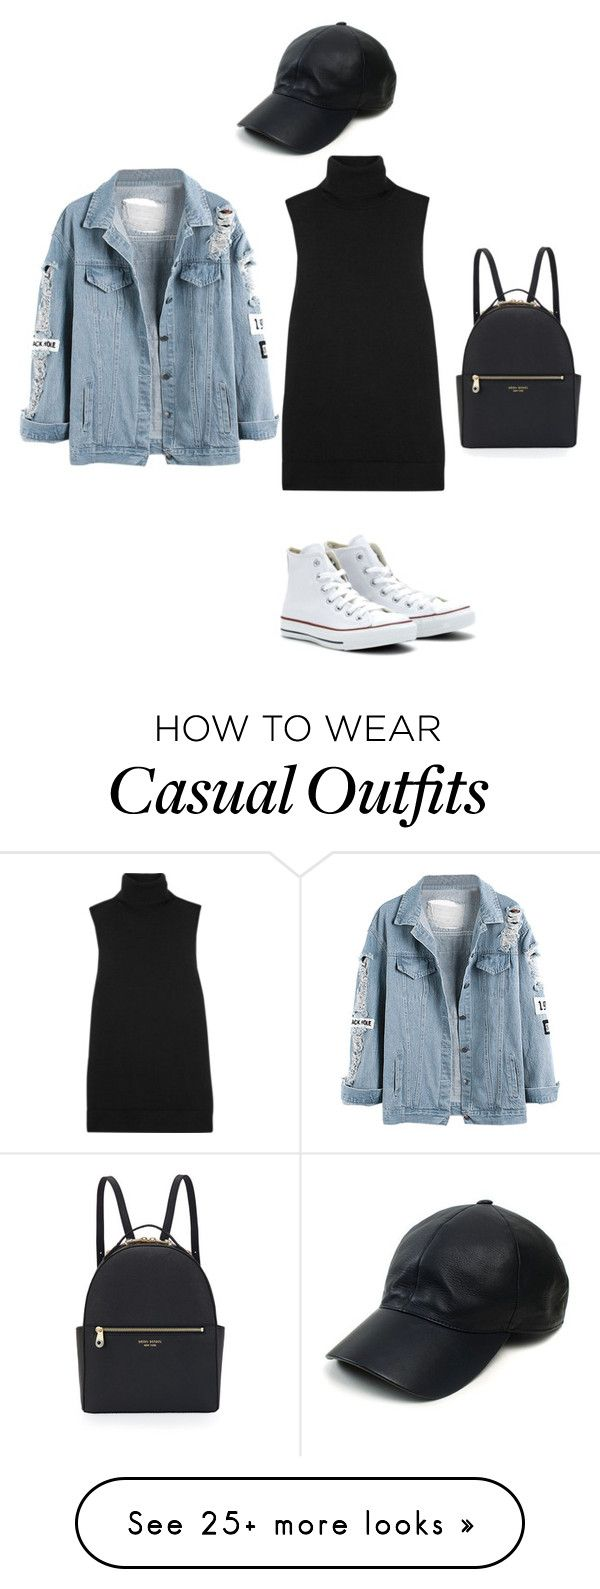 """Casually chic"" by cynthiantinunu on Polyvore featuring Vianel, Converse, Henri Bendel, Equipment, women's clothing, women, female, woman, misses and juniors"